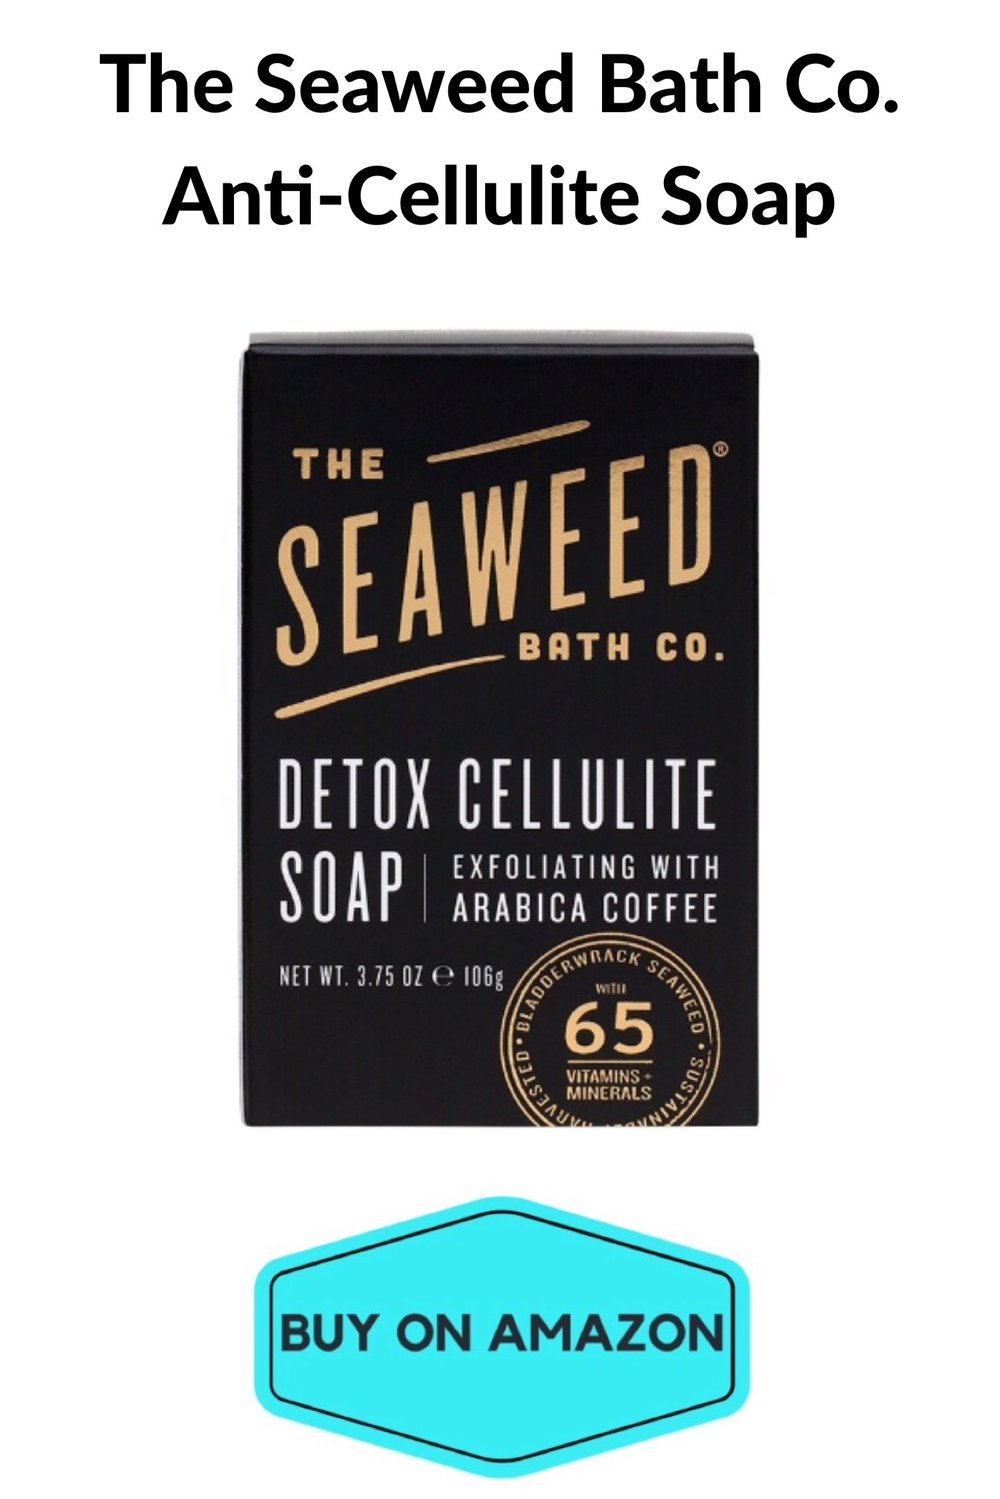 The Seaweed Bath Company Anti-Cellulite Soap